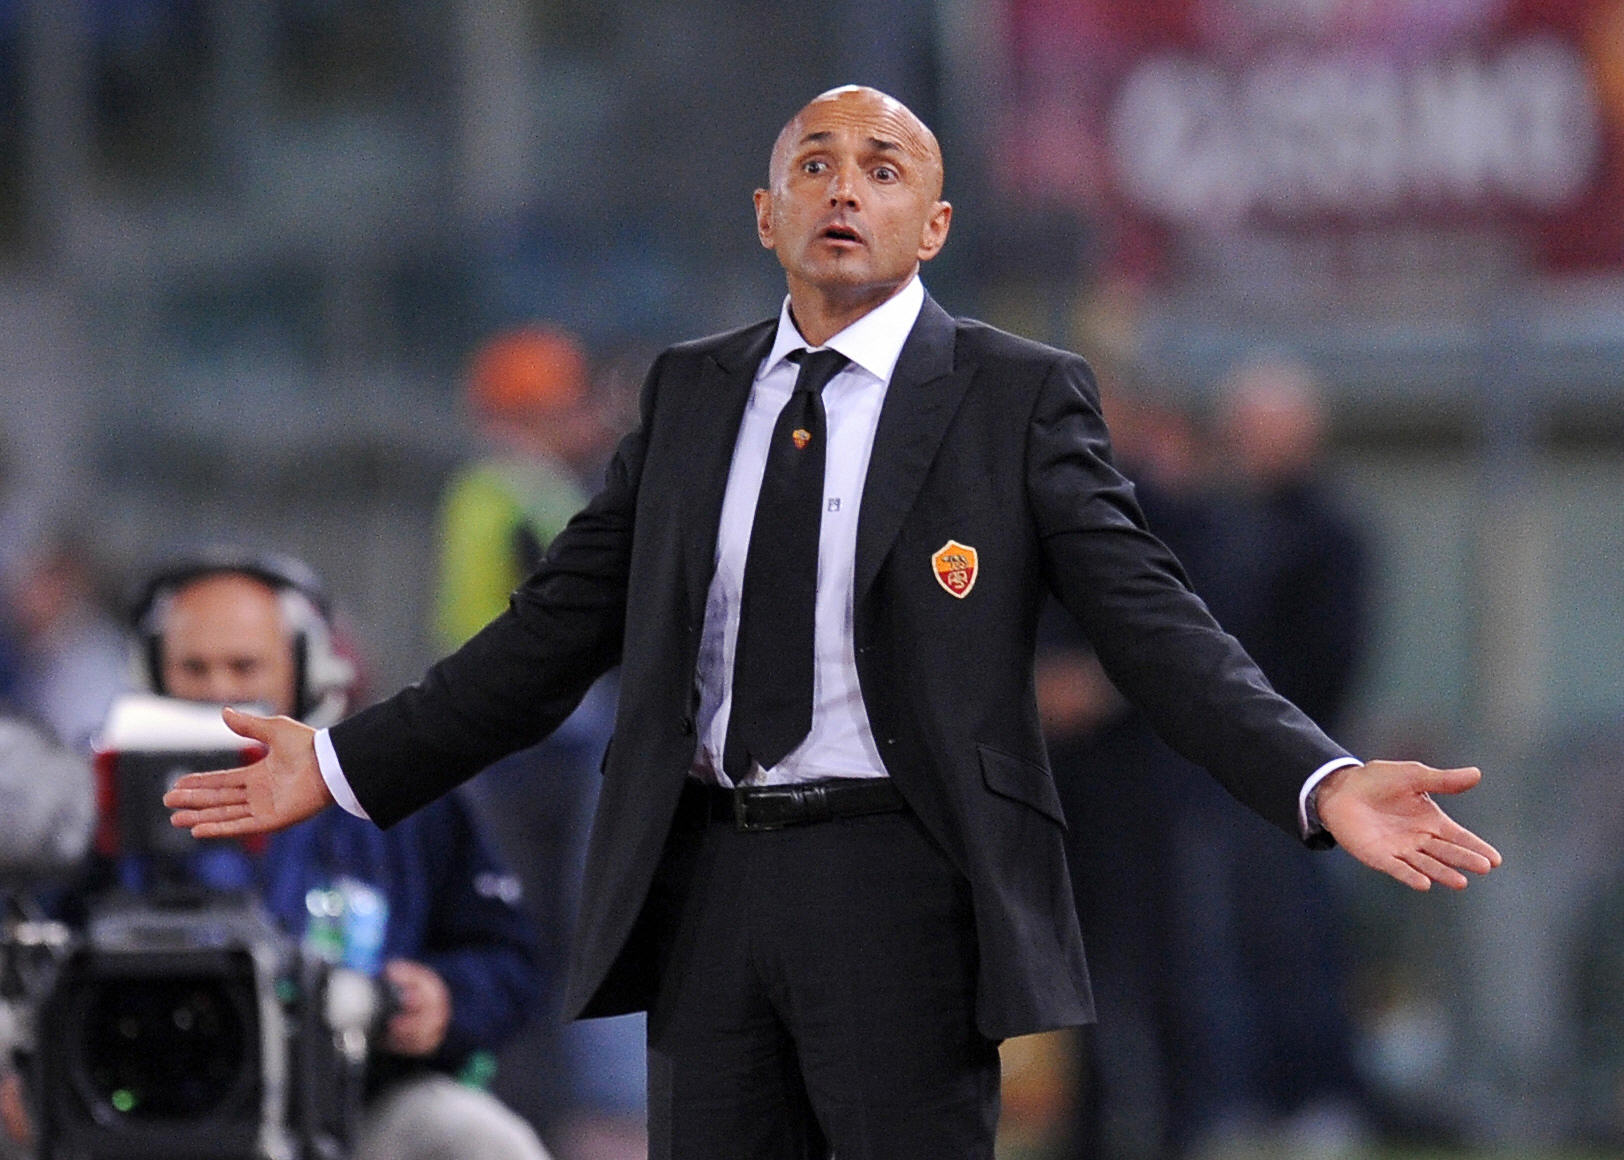 AS Roma coach Luciano Spalletti reacts during his team's Champions League Group A match against CFR Cluj on September 16, 2008 in Roma.  AFP PHOTO / NICO CASAMASSIMA (Photo credit should read NICO CASAMASSIMA/AFP/Getty Images)